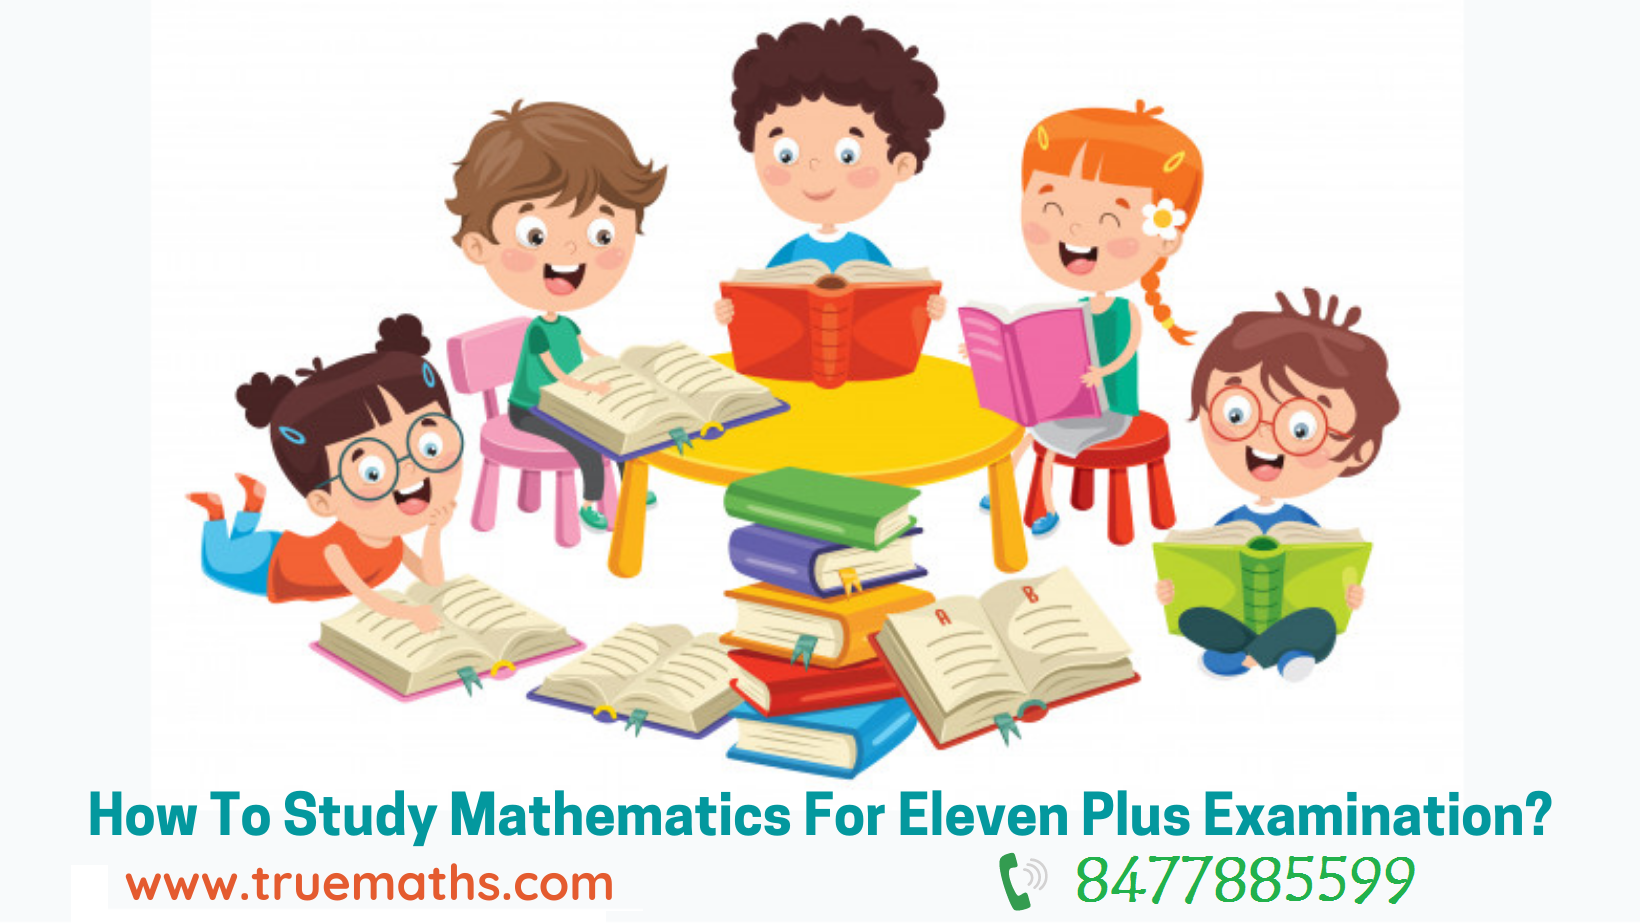 How To Study Mathematics For Eleven Plus Examination?